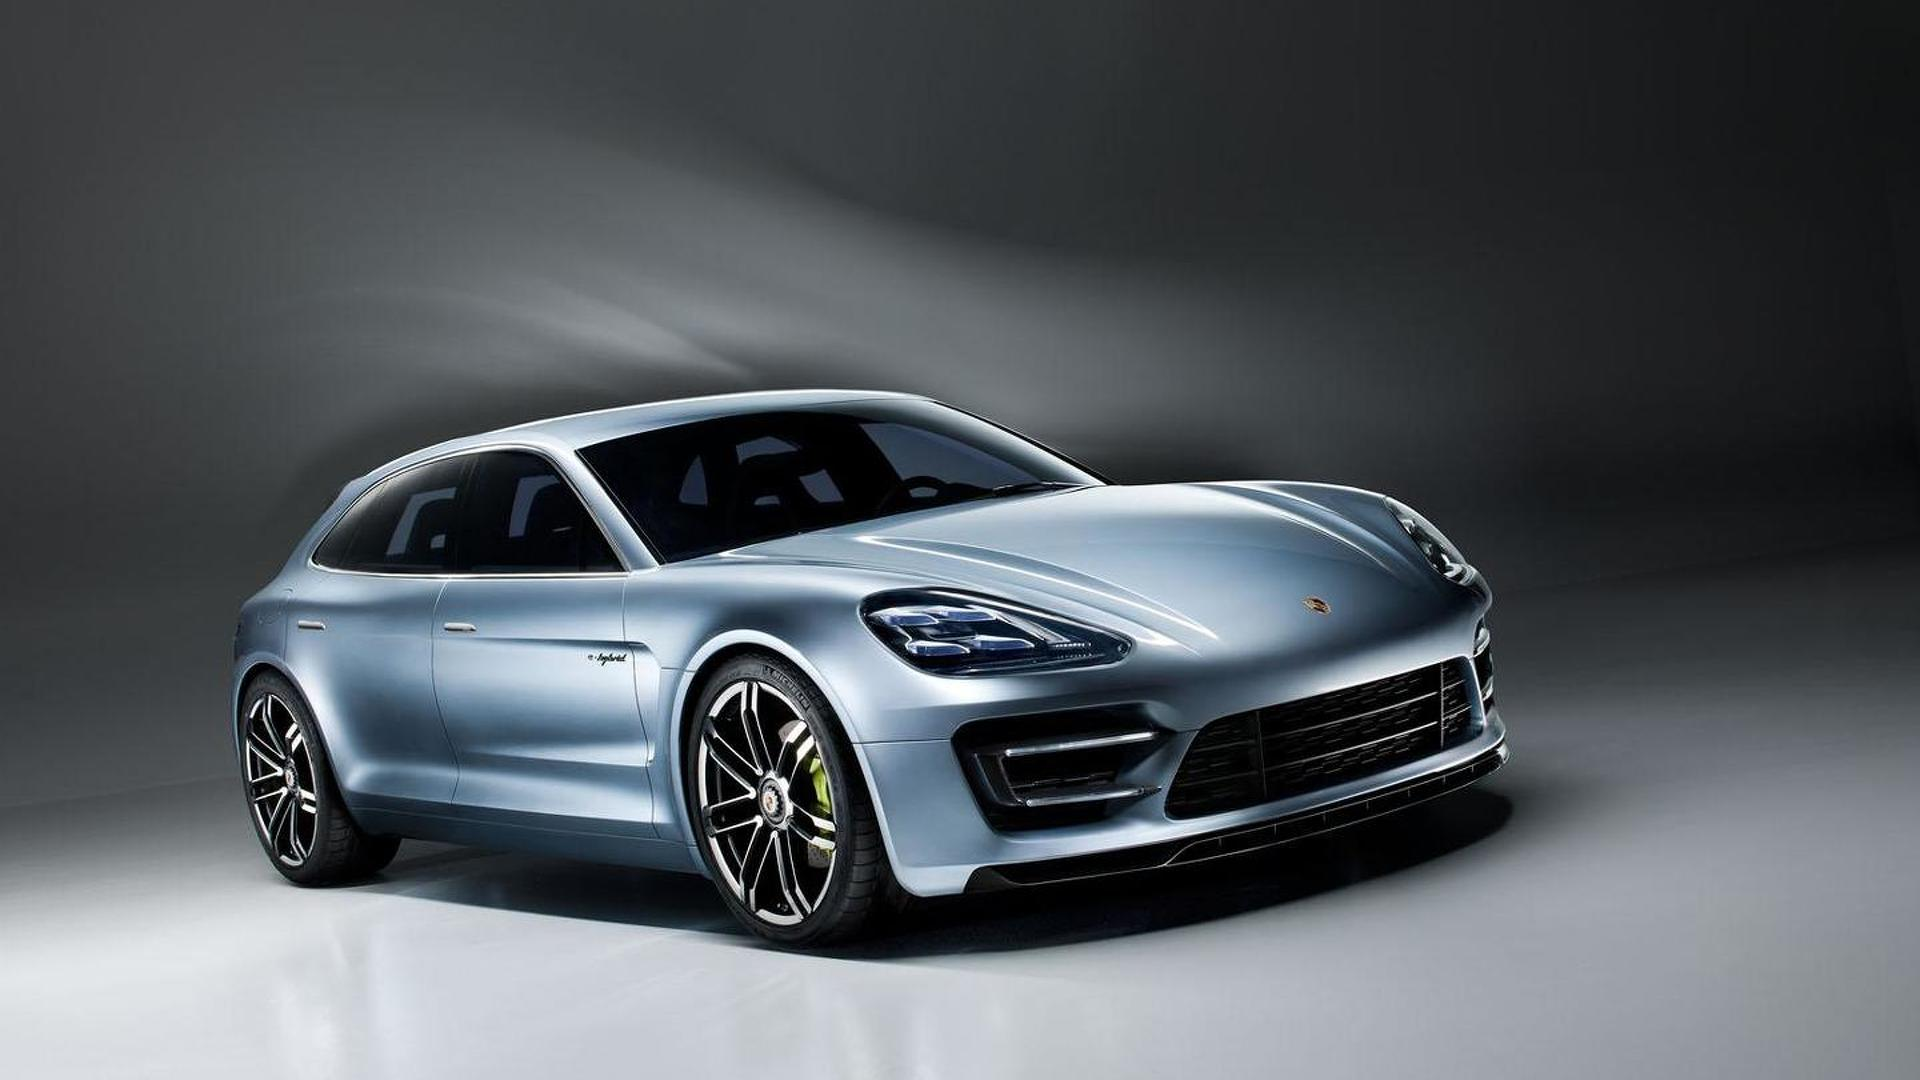 porsche new models 2018.  models porsche ceo confirms plans to launch four new models by 2018  report  product 20121203 194422 with porsche 0